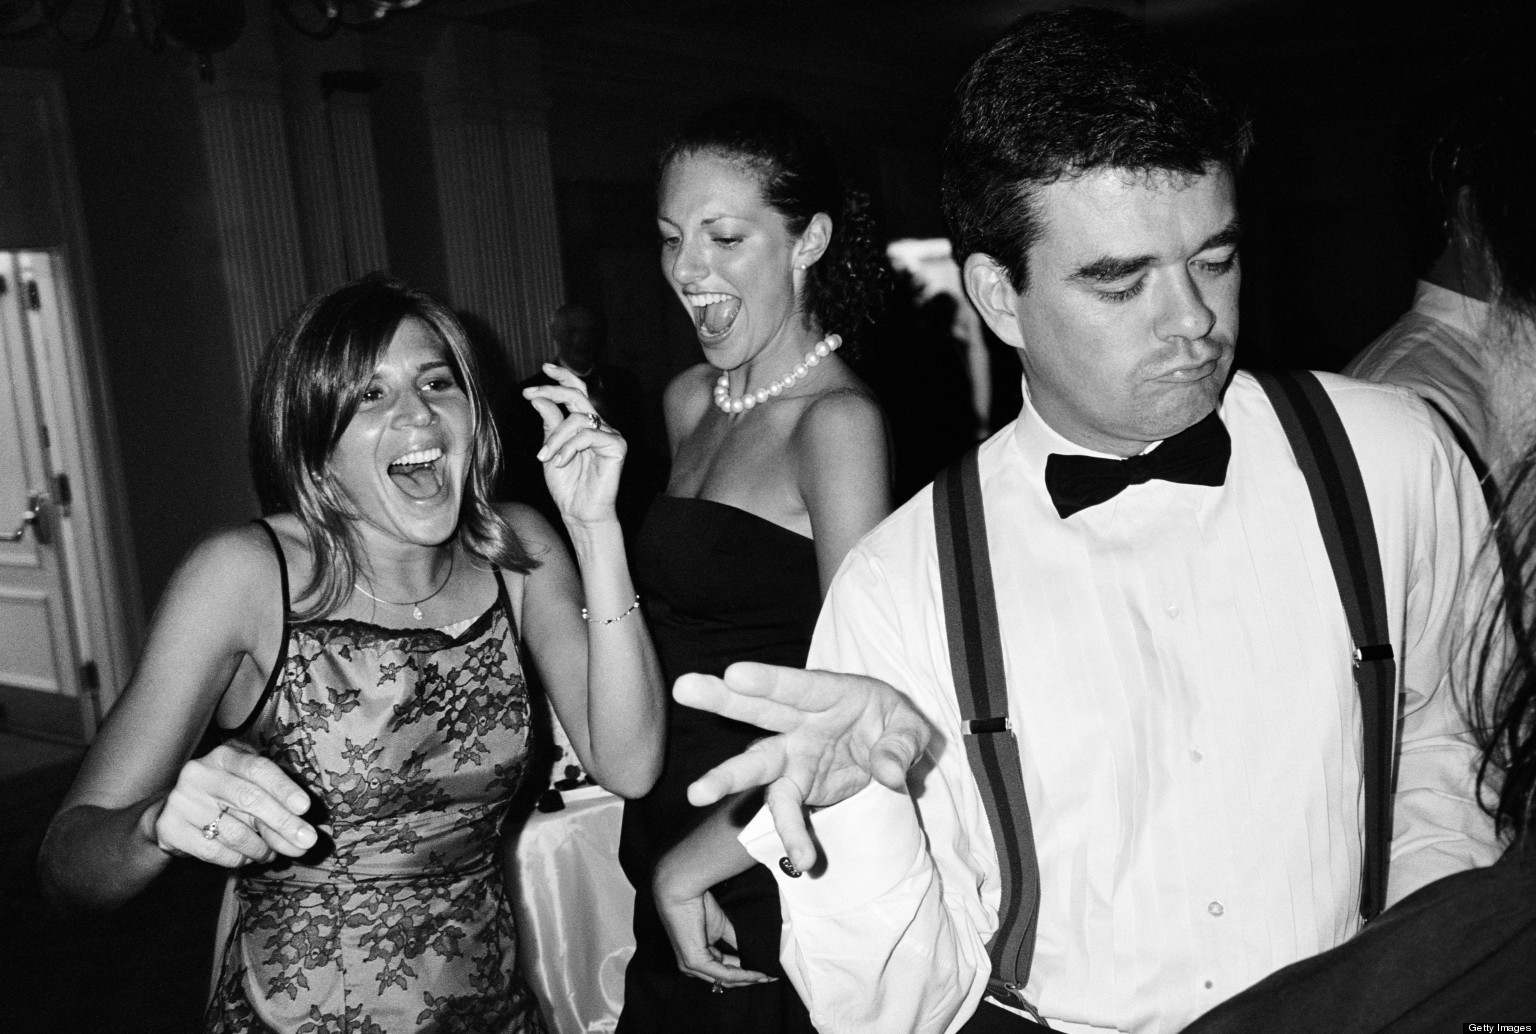 The 10 Best Songs To Play At Your Black Tie Wedding